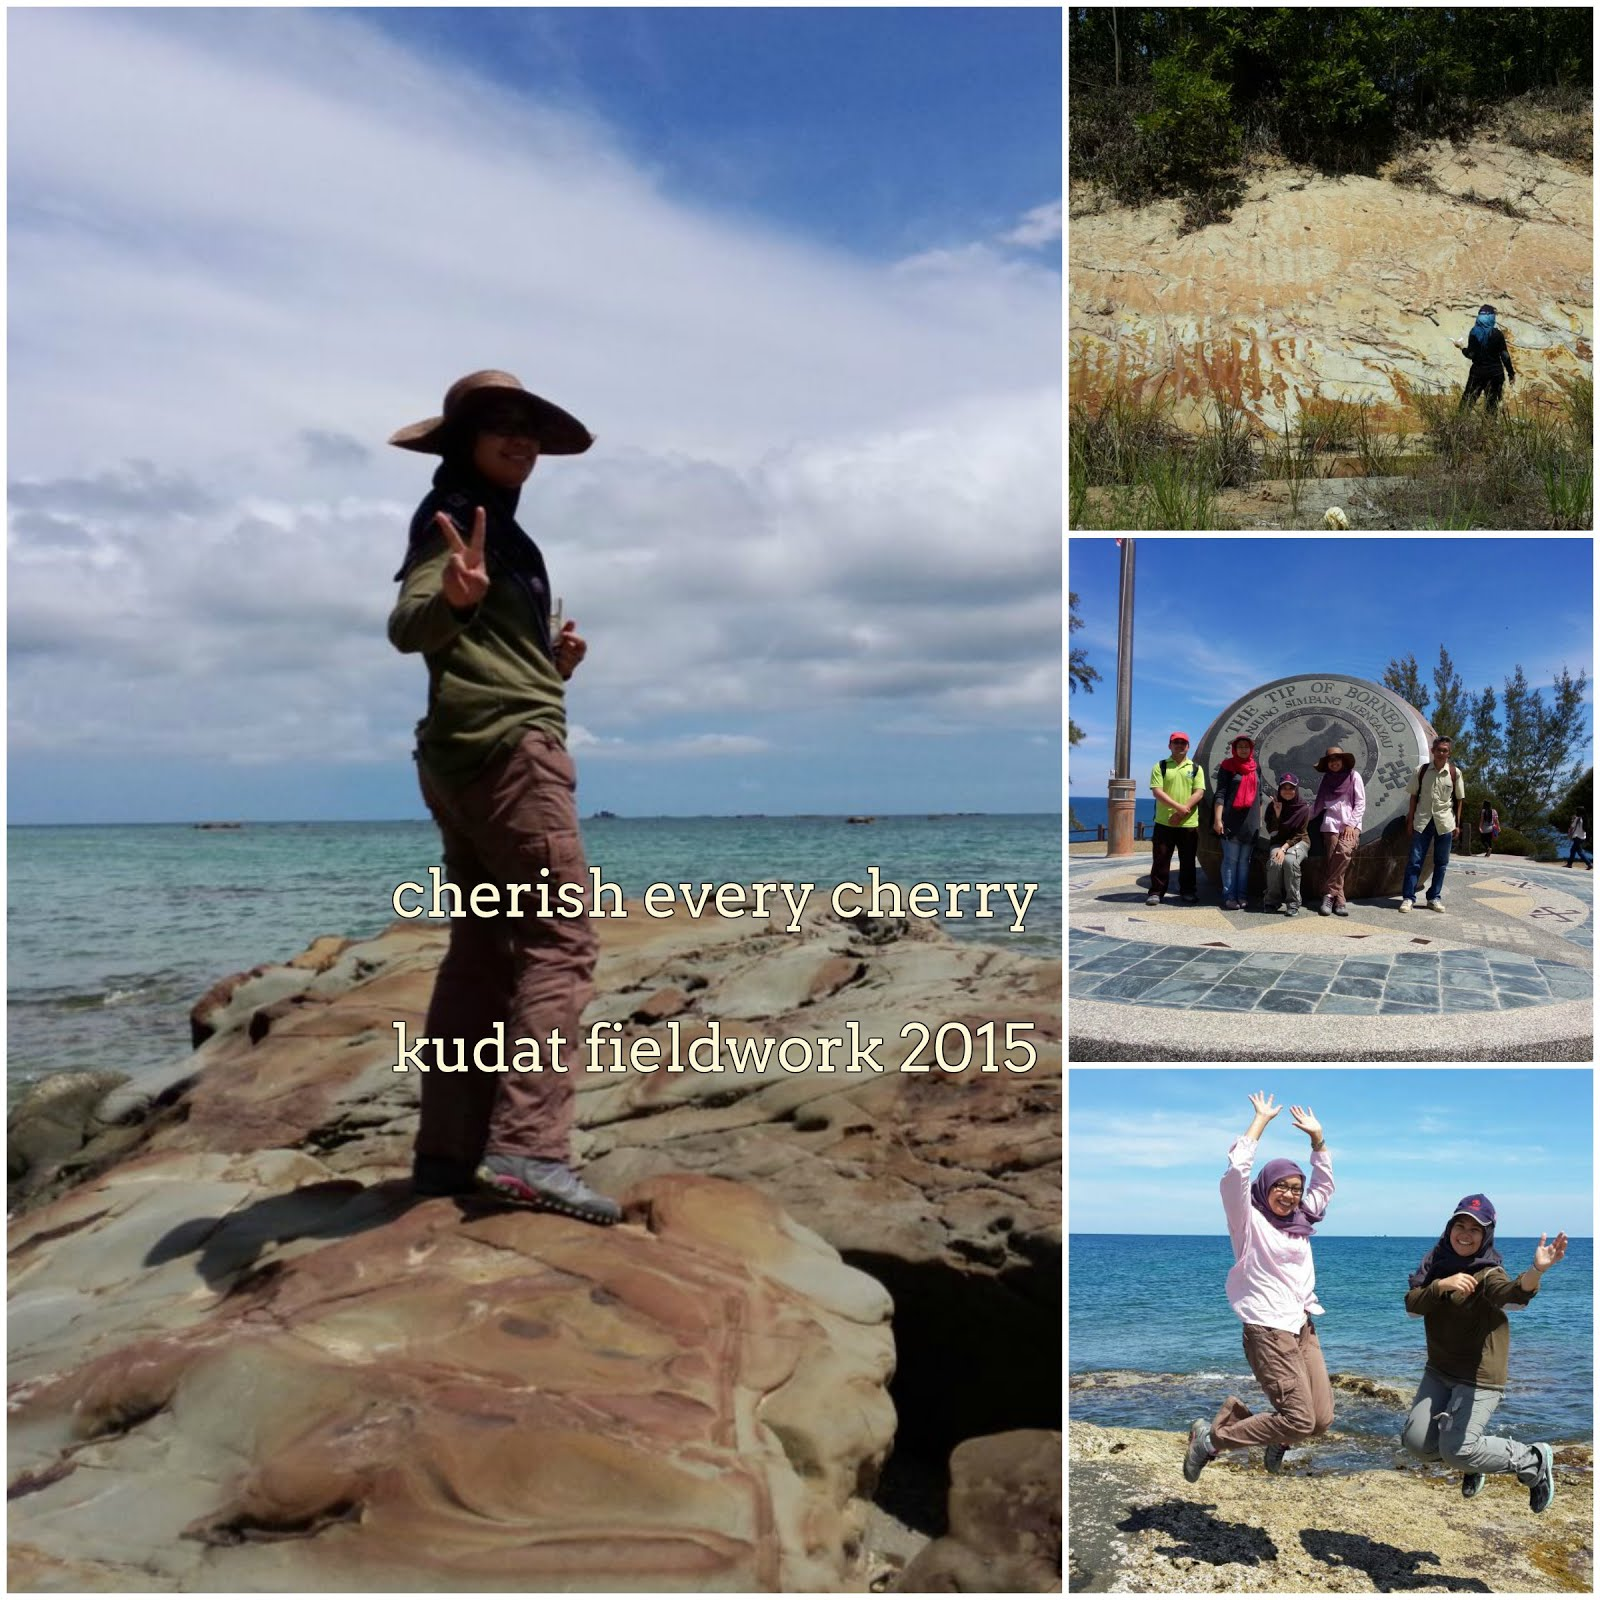 Fieldword Kudat 2015